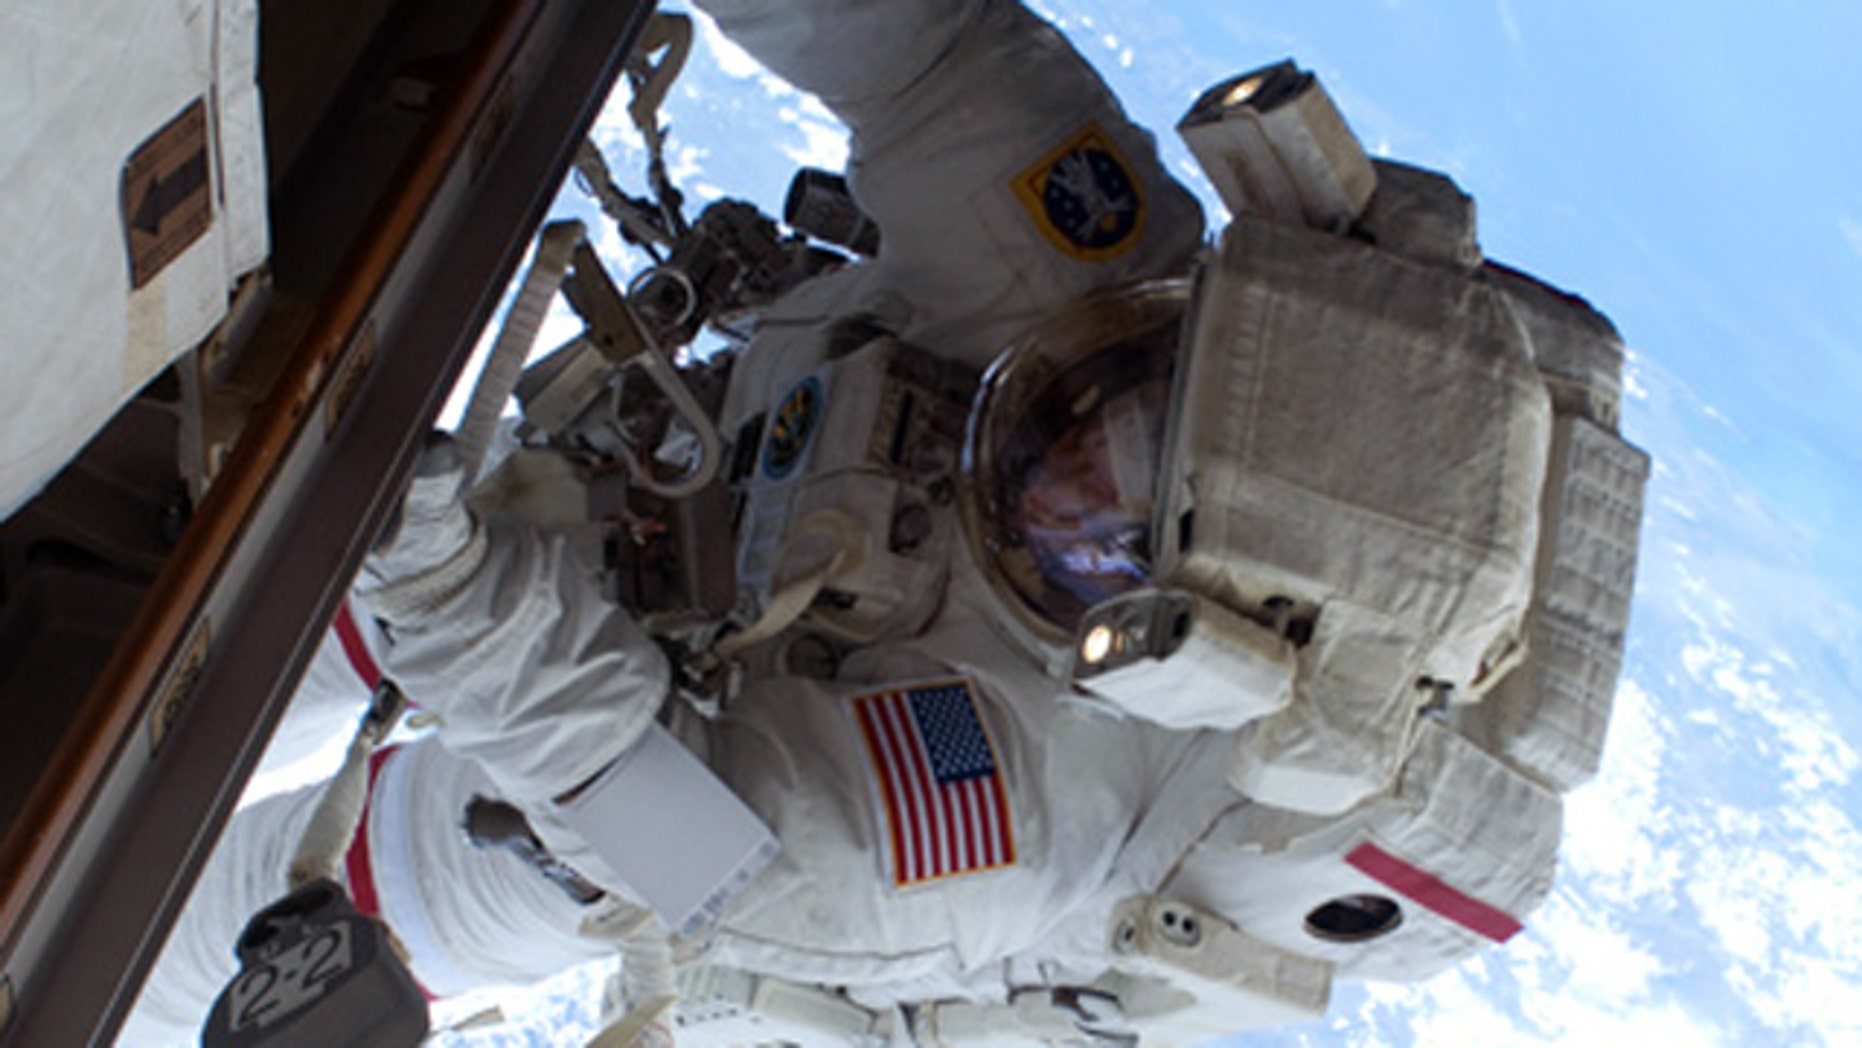 NASA astronaut Rick Mastracchio, STS-131 mission specialist, on the mission's second spacewalk as construction and maintenance continues on the International Space Station.